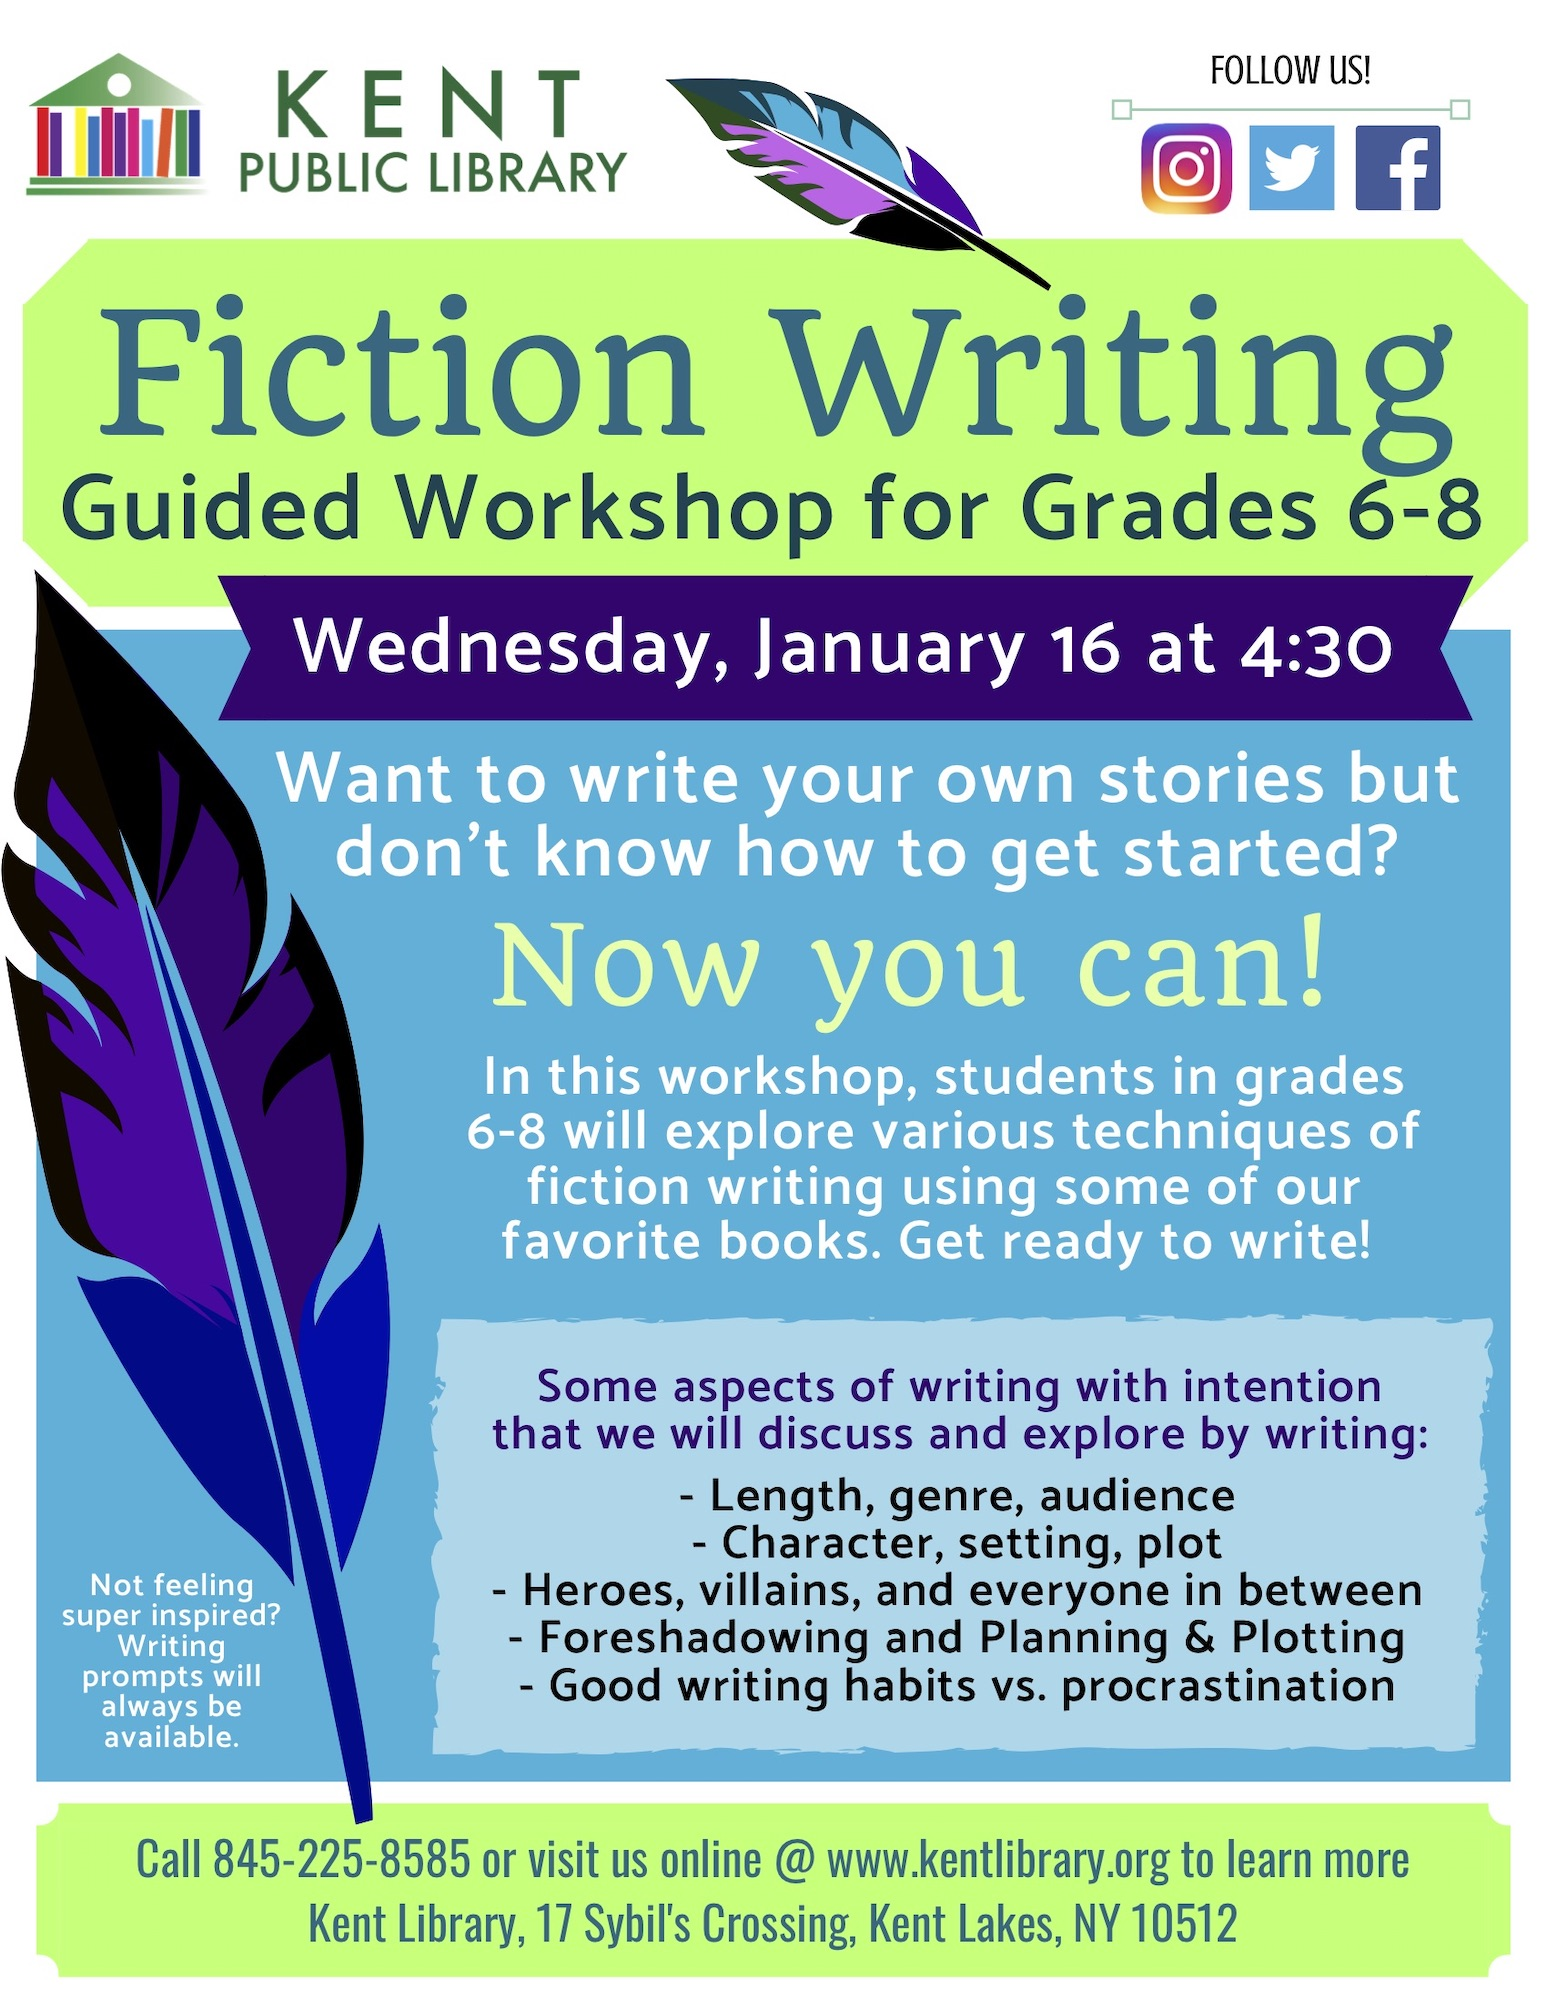 Middle School Fiction Writing Workshop at the Kent Library